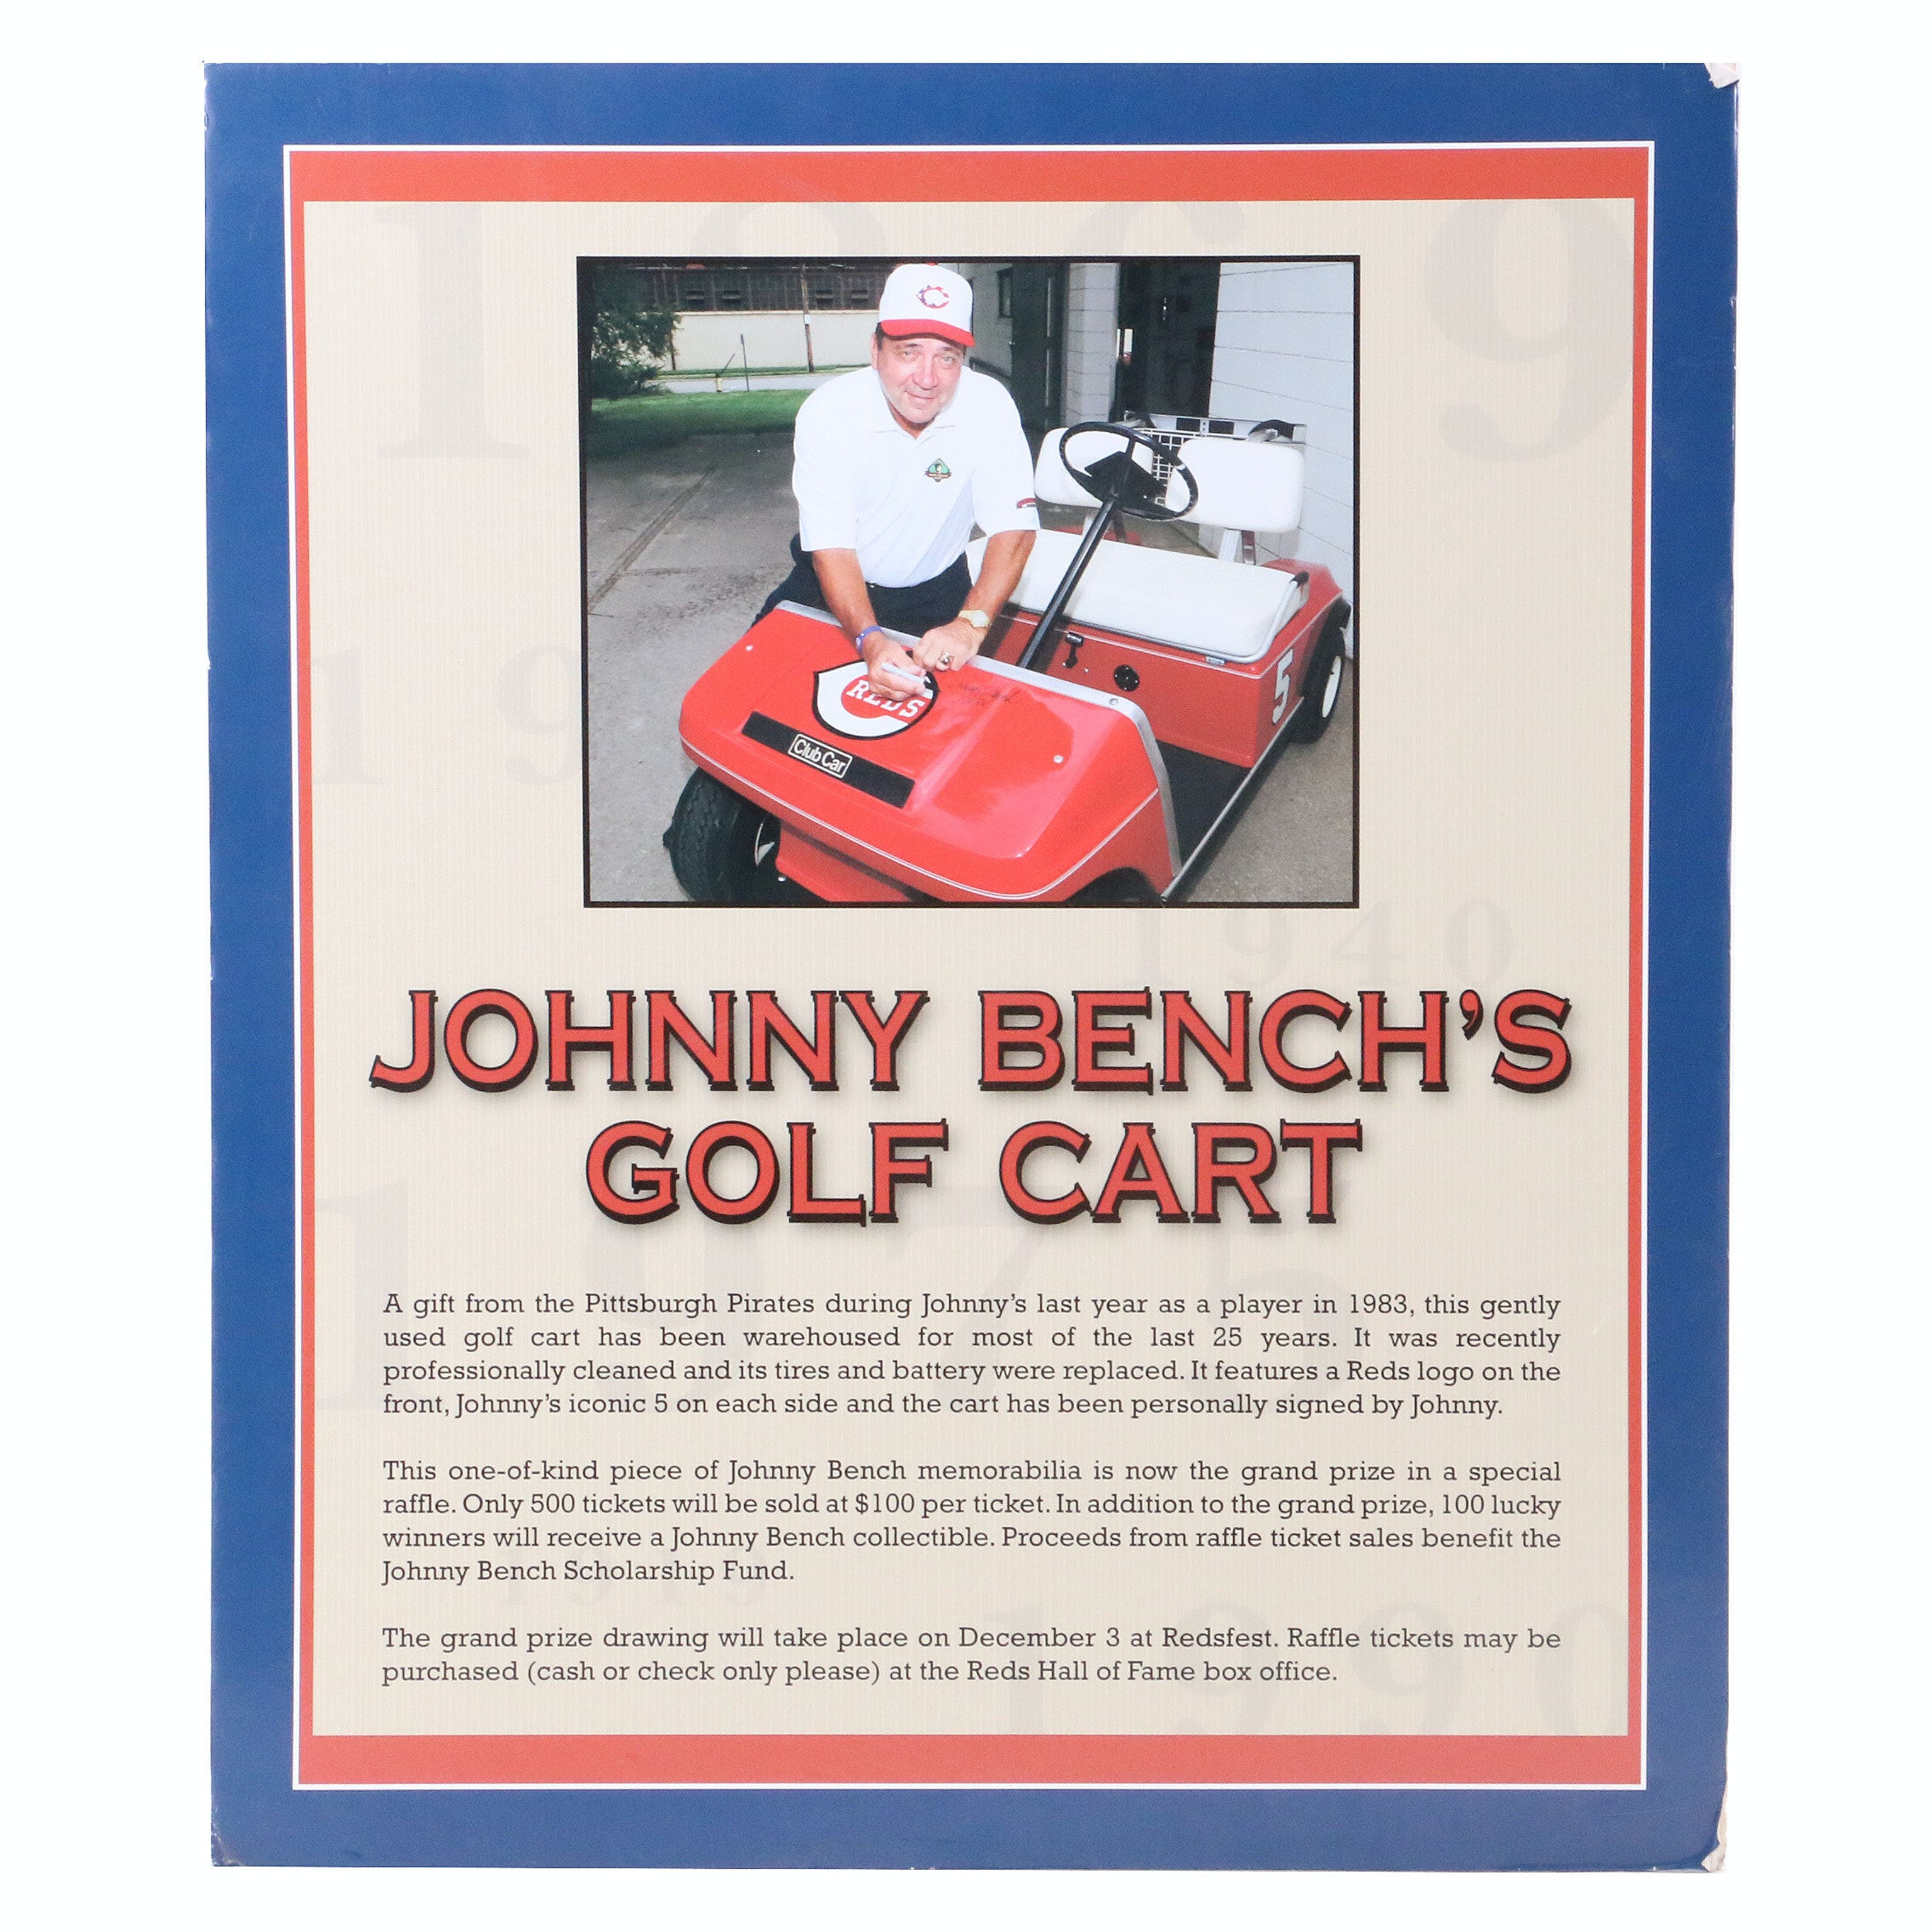 Johnny Bench's Golf Cart Raffle Sign From The Reds Hall of Fame COA